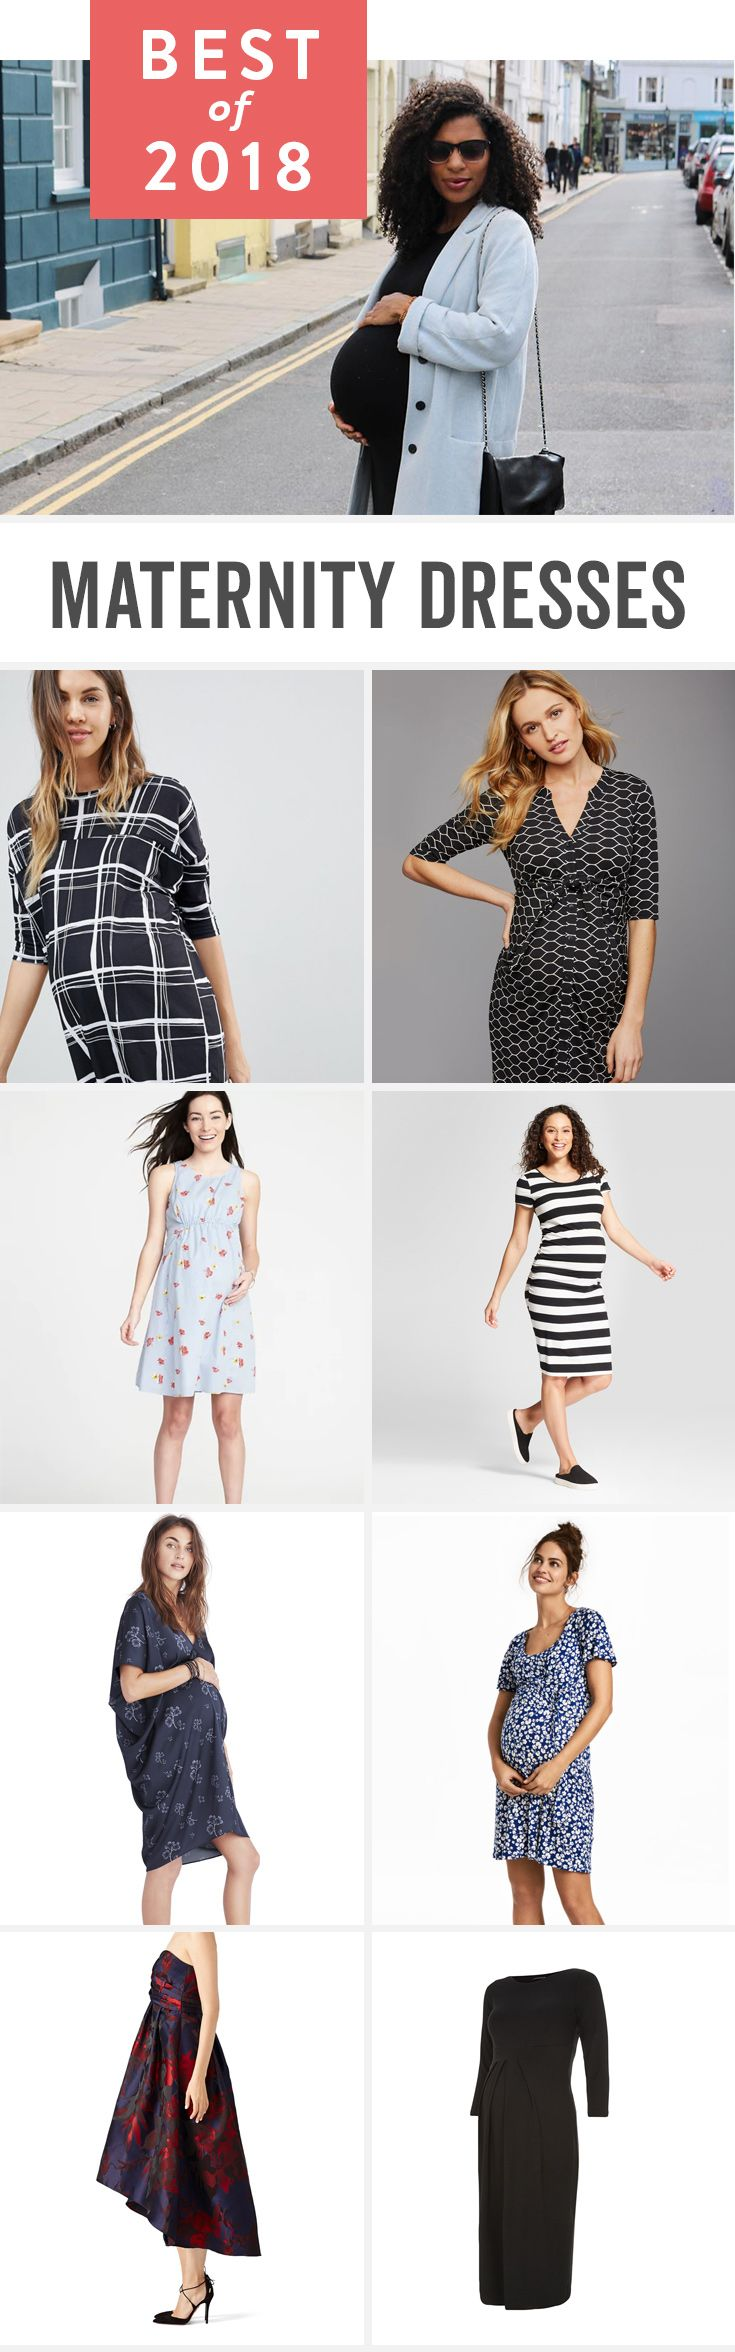 Maternity dresses to round out your pregnancy wardrobe. Summer and winter options for work, your baby shower and casual dresses for pregnancy, too.